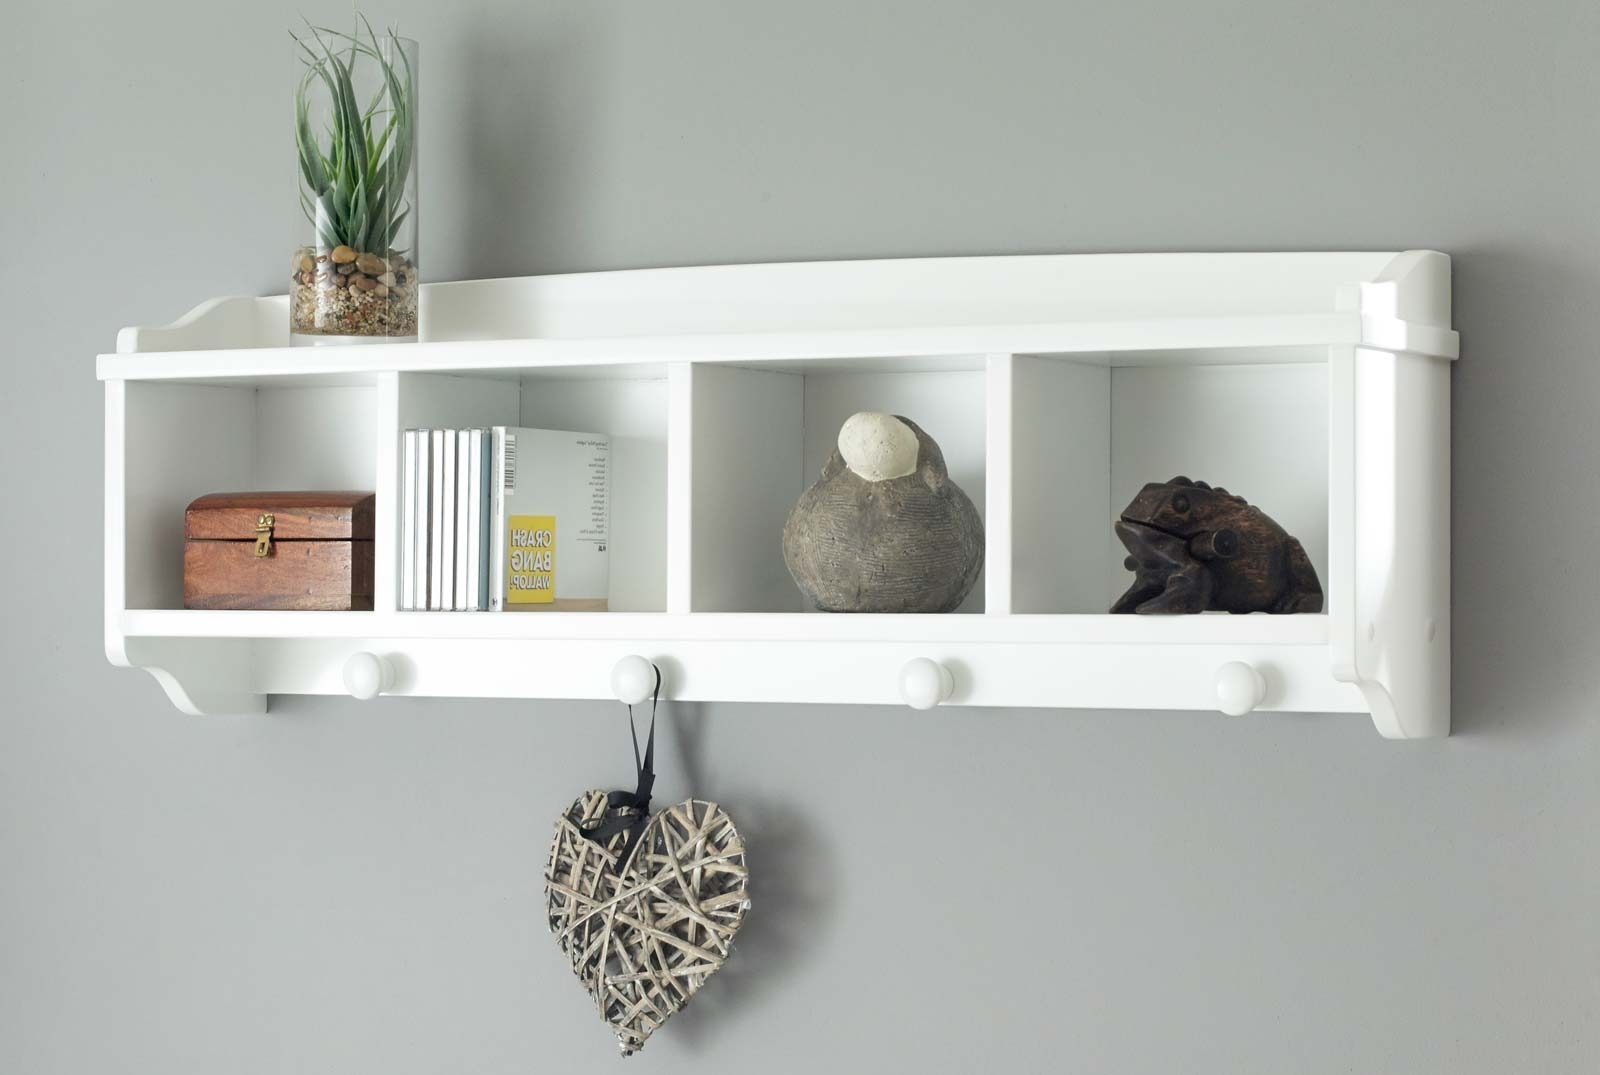 Widely Used Wall Shelving Units With Small Wall Shelving Units — John Robinson House Decor : Ideas For (View 14 of 15)